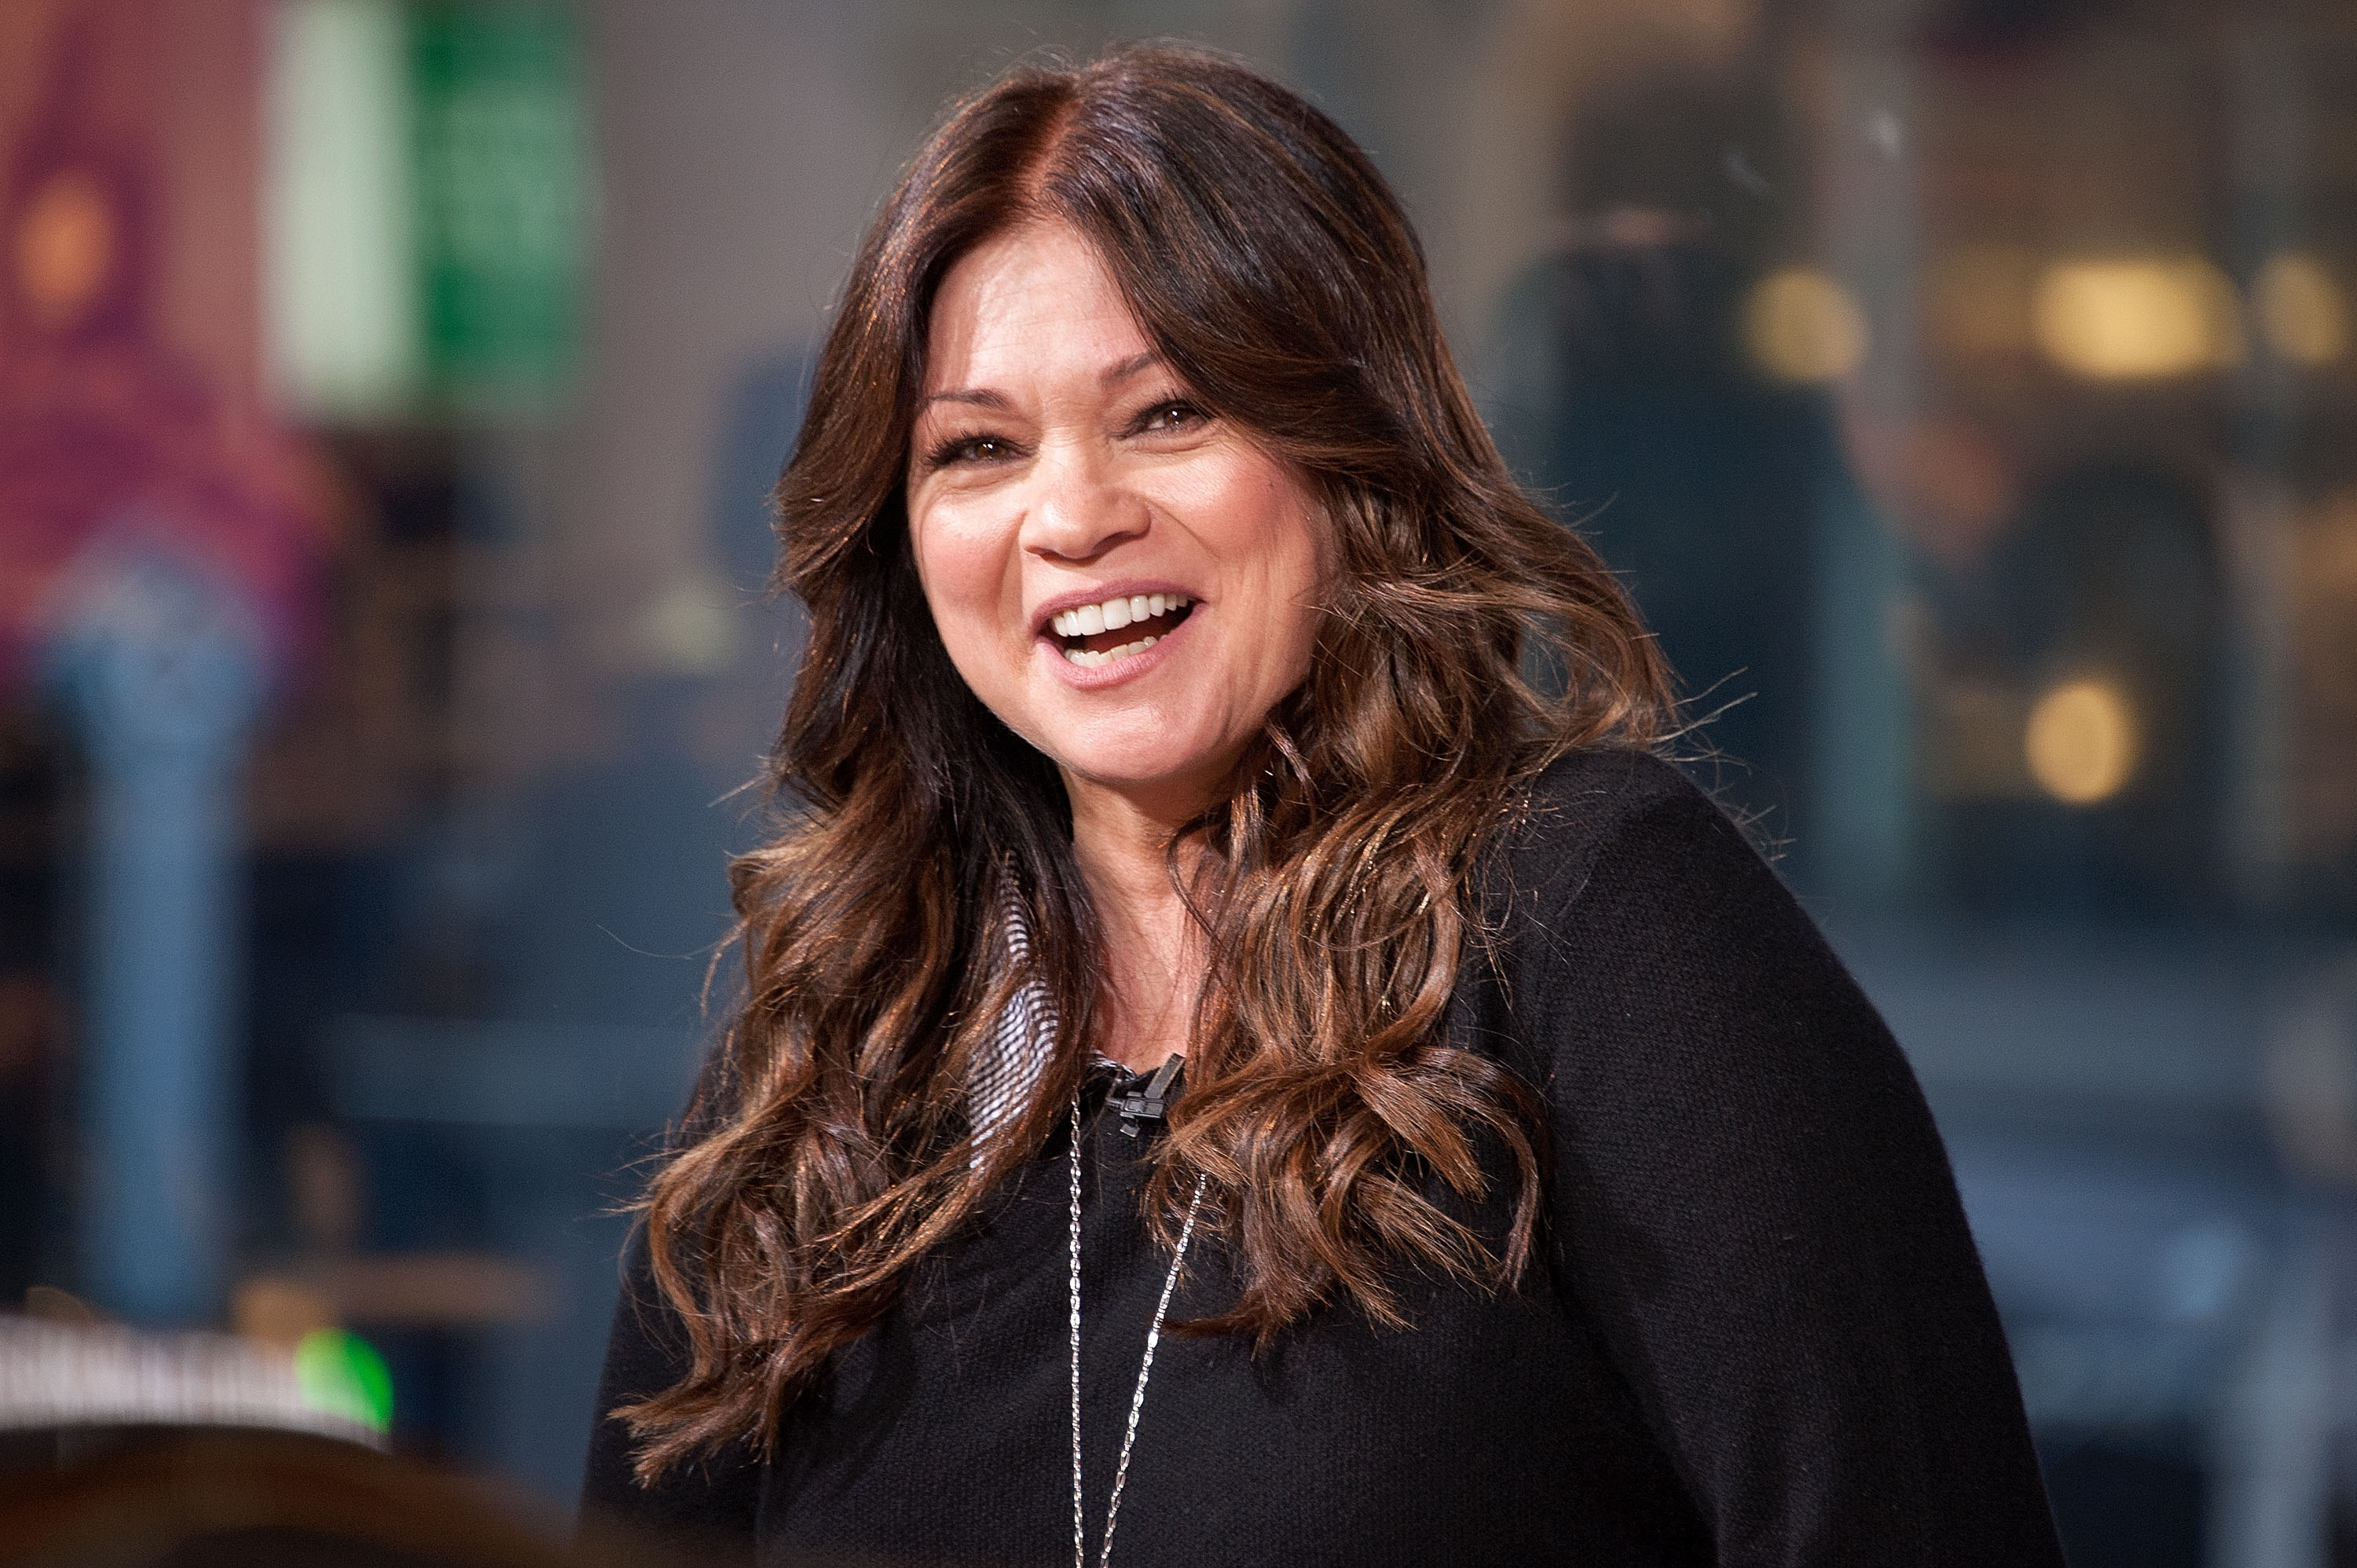 Valerie Bertinelli during a 2014 visit to a studio in New York City. | Photo: Getty Images